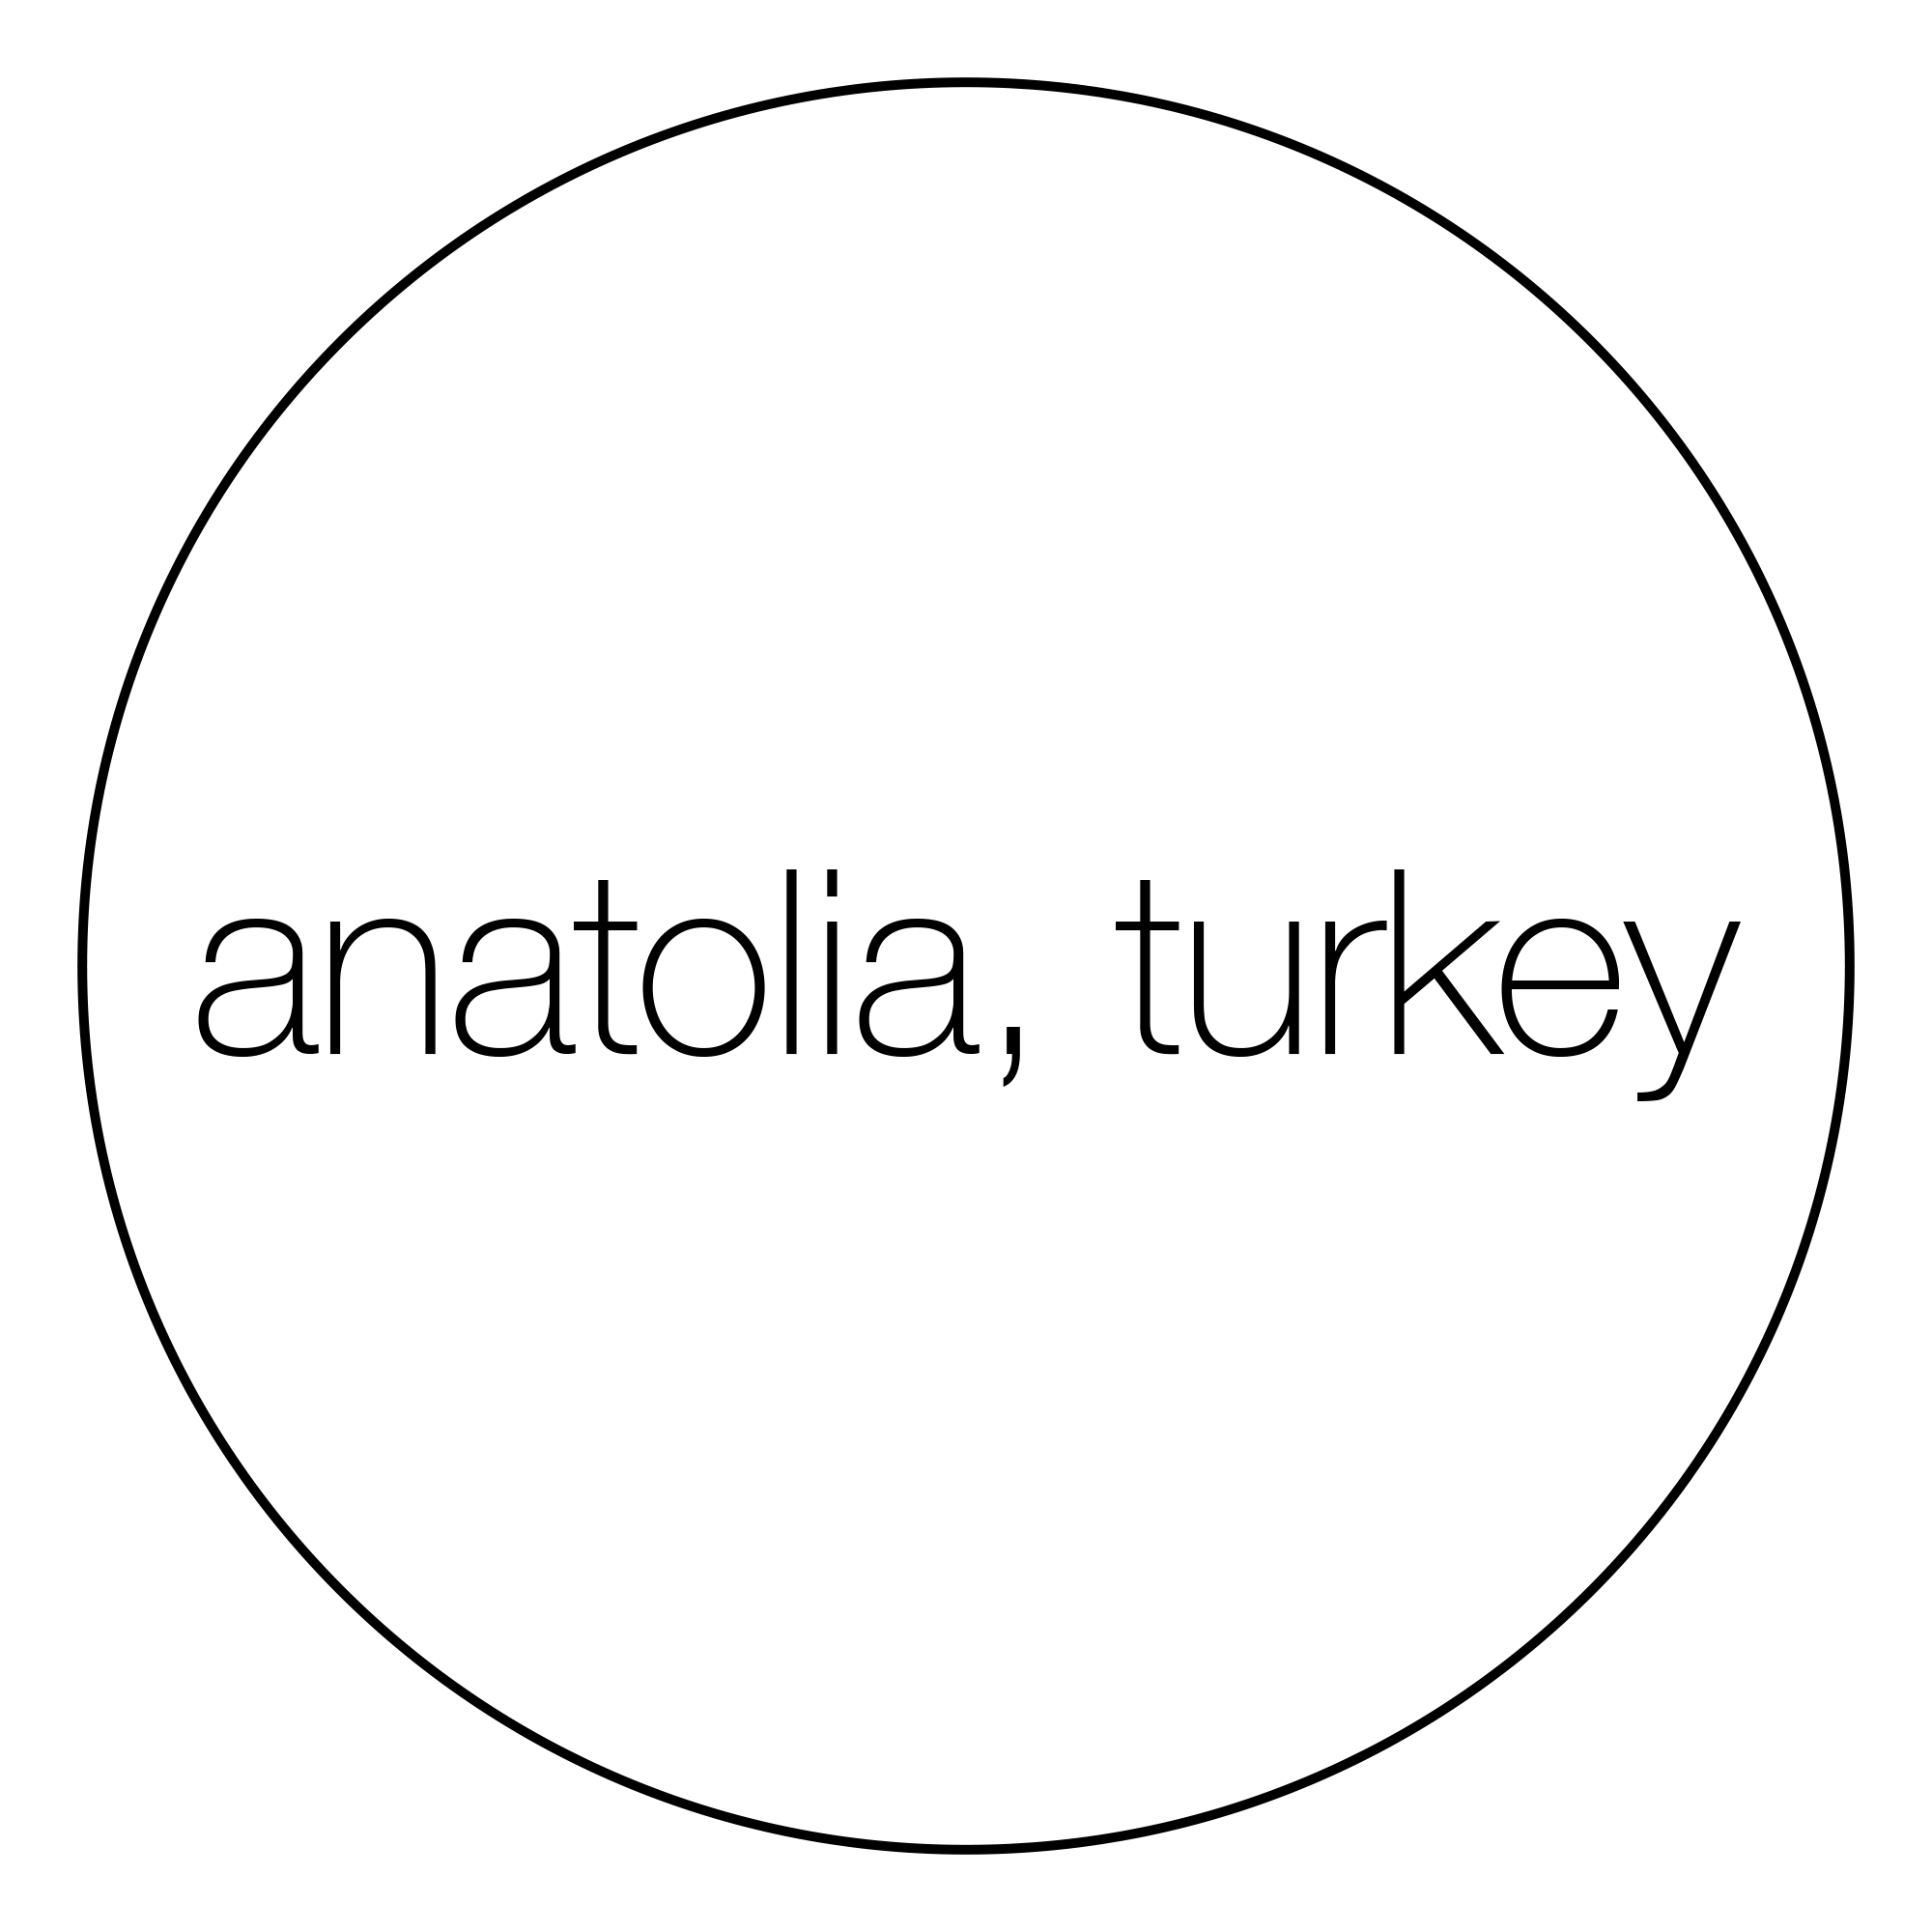 attribute-origin-anatolia-turkey